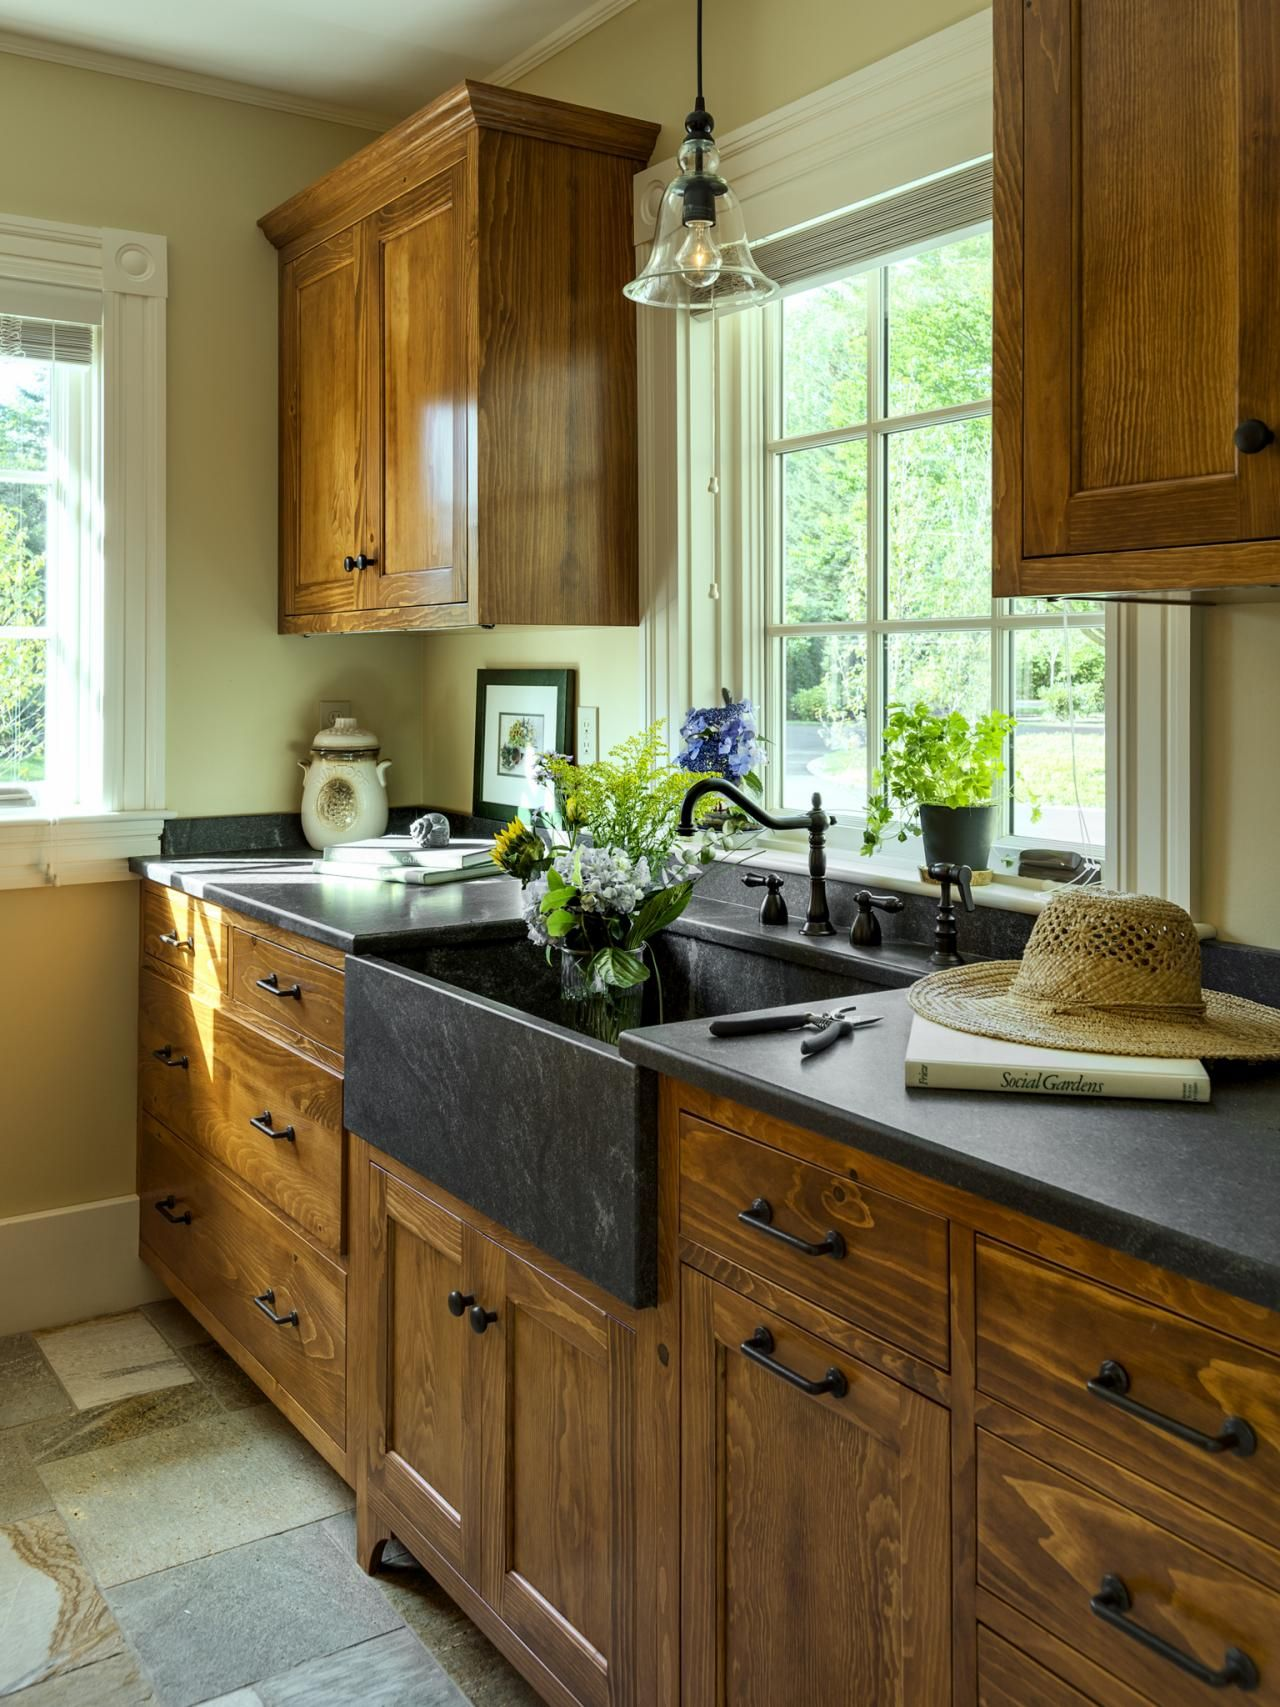 Top 50 pinterest gallery 2014 hgtv sinks and kitchens for Wooden kitchen cupboards